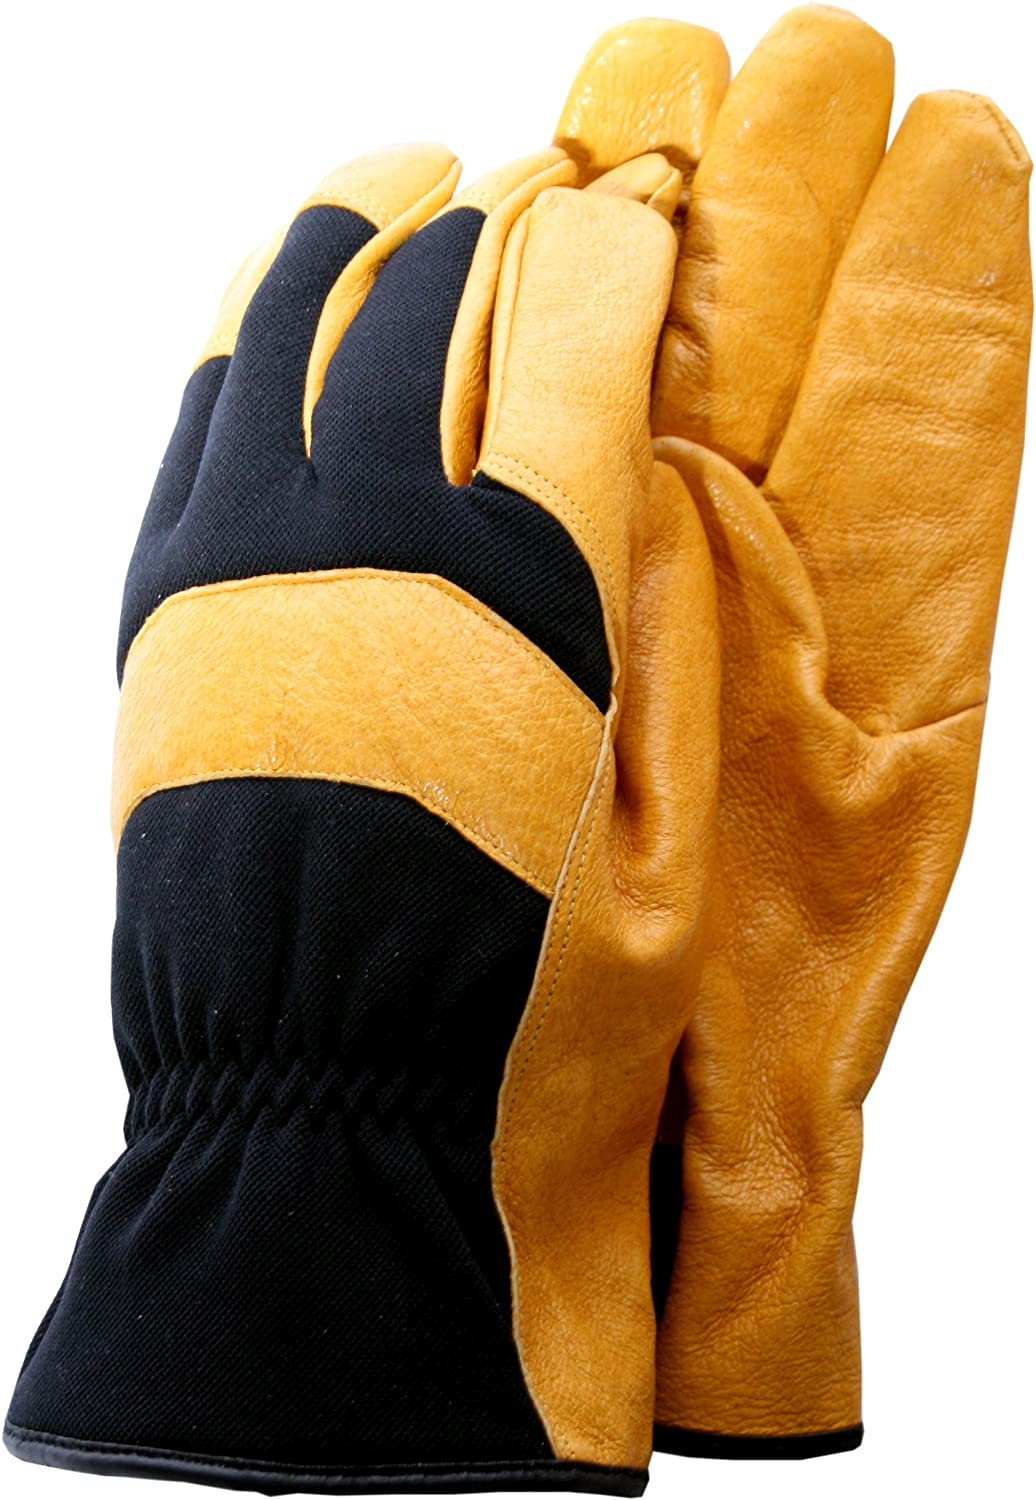 Town & Country TGL420 Deluxe General Purpose Leather Mens Gloves, 0 Fixings and Hardware Items Leather Palm Gloves Workwear and Safety Products